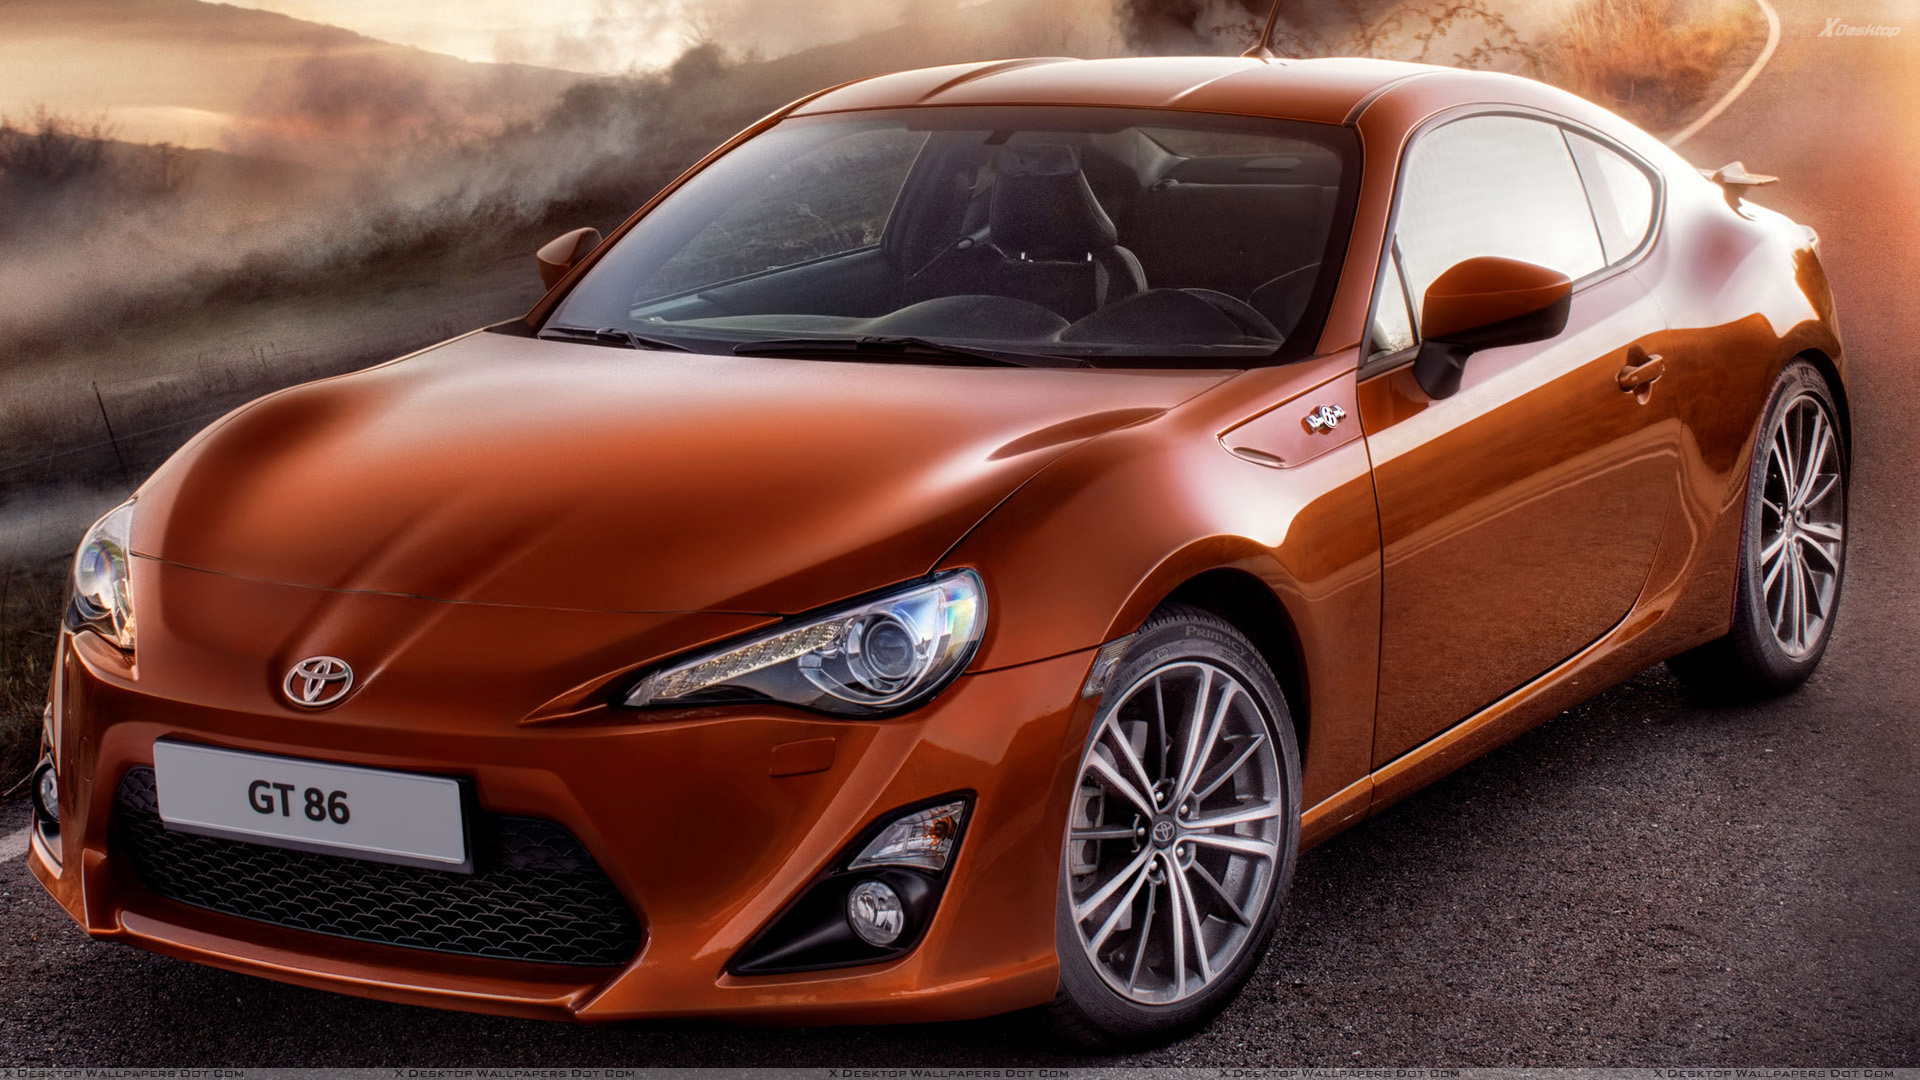 front pose 2012 toyota gt 86 in orange wallpaper. Black Bedroom Furniture Sets. Home Design Ideas